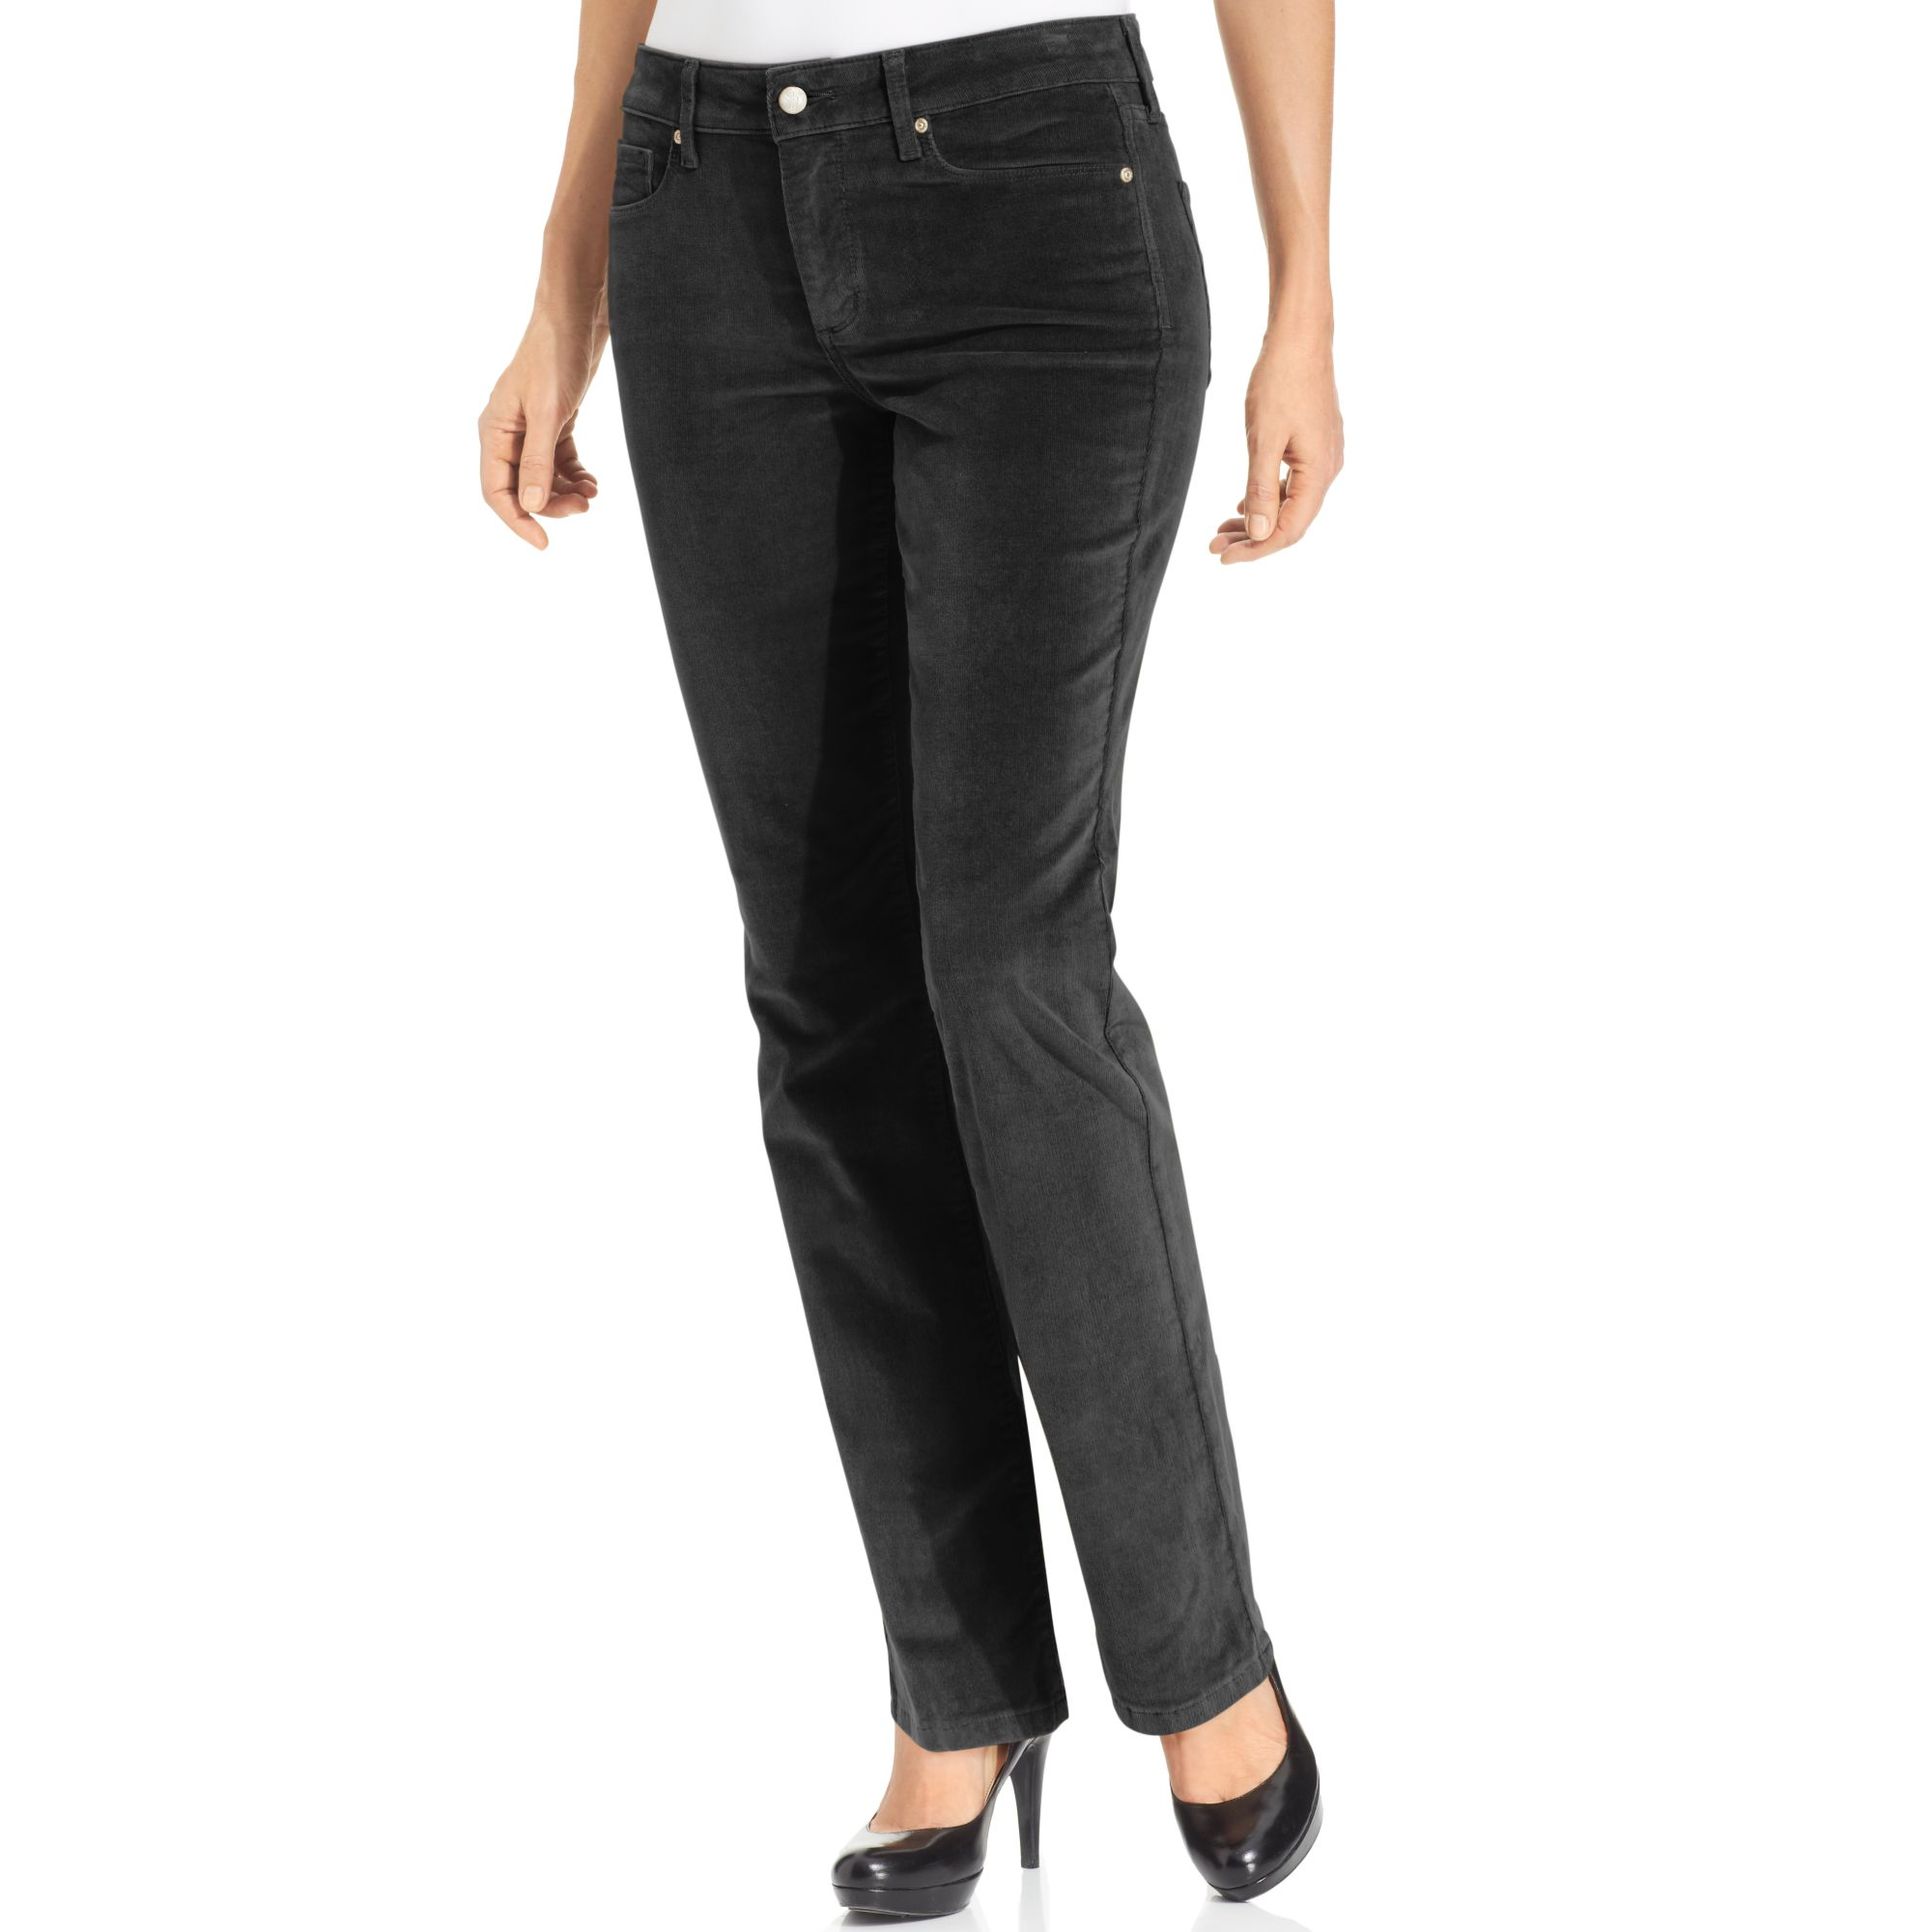 Free shipping on petite jeans for women at kejal-2191.tk Shop for petite-size jeans from the best brands. Totally free shipping and returns.